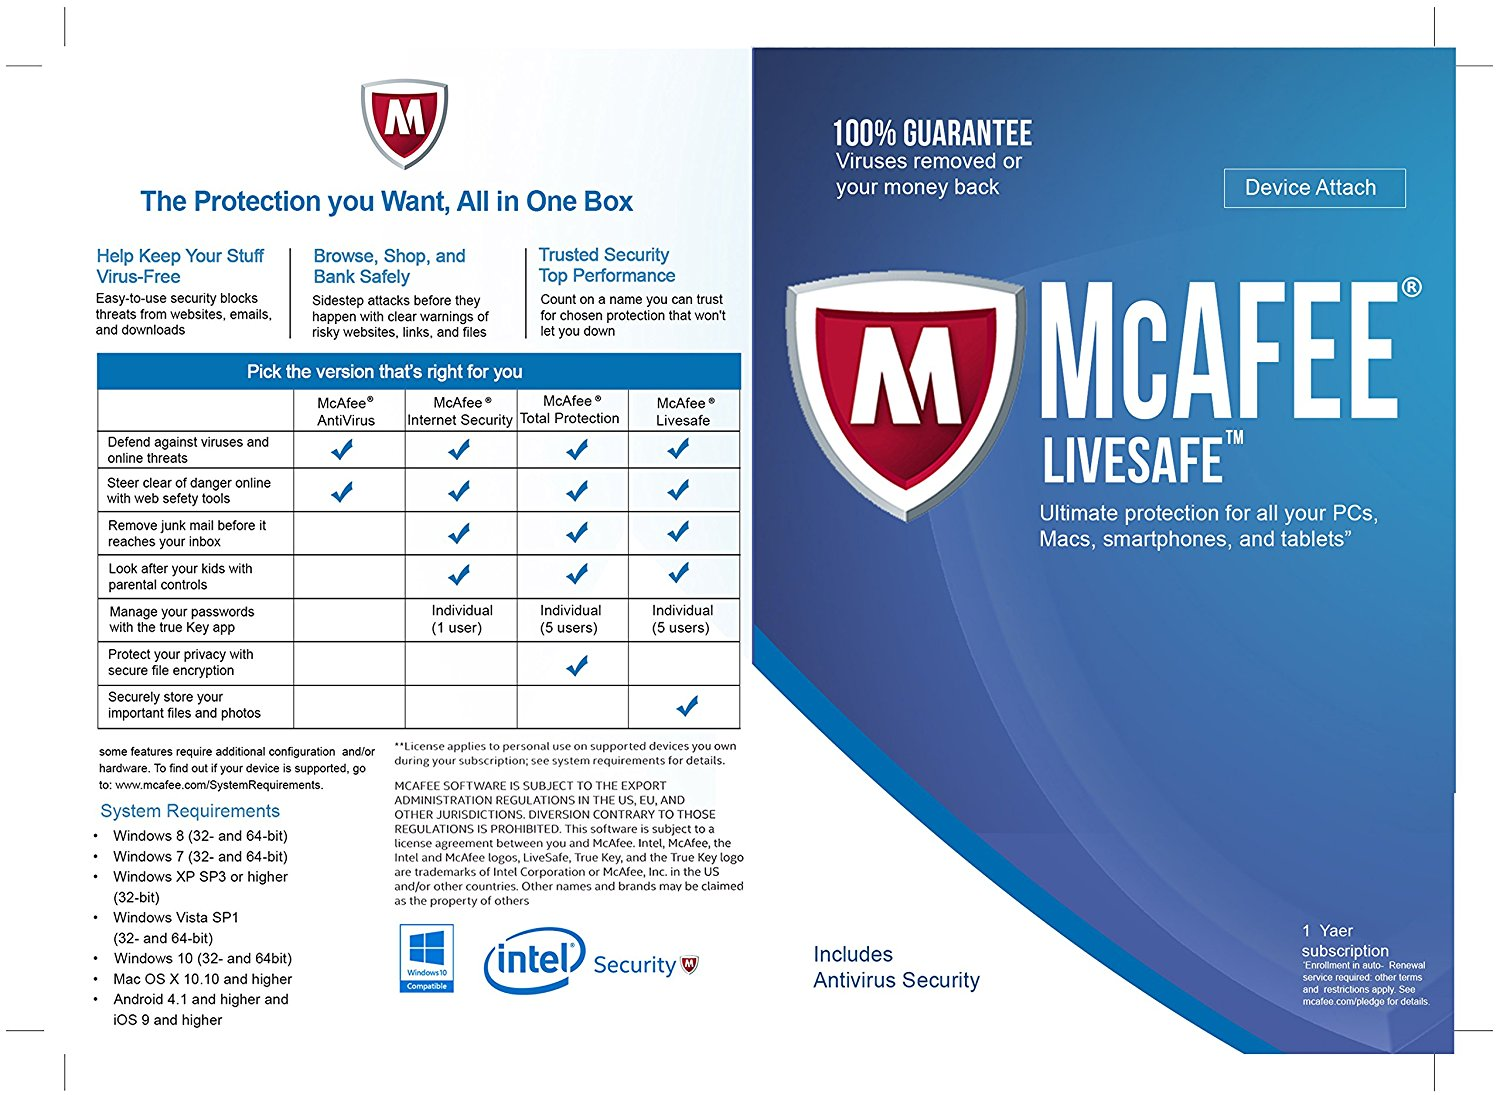 HOW TO GET A CHEAP RENEWAL FOR YOUR MCAFEE LIVESAFE, TOTAL PROTECTION, INTERNET SECURITY OR ANTIVIRUS- UNLIMITED DEVICES (WINDOWS/ANDROID/MAC)